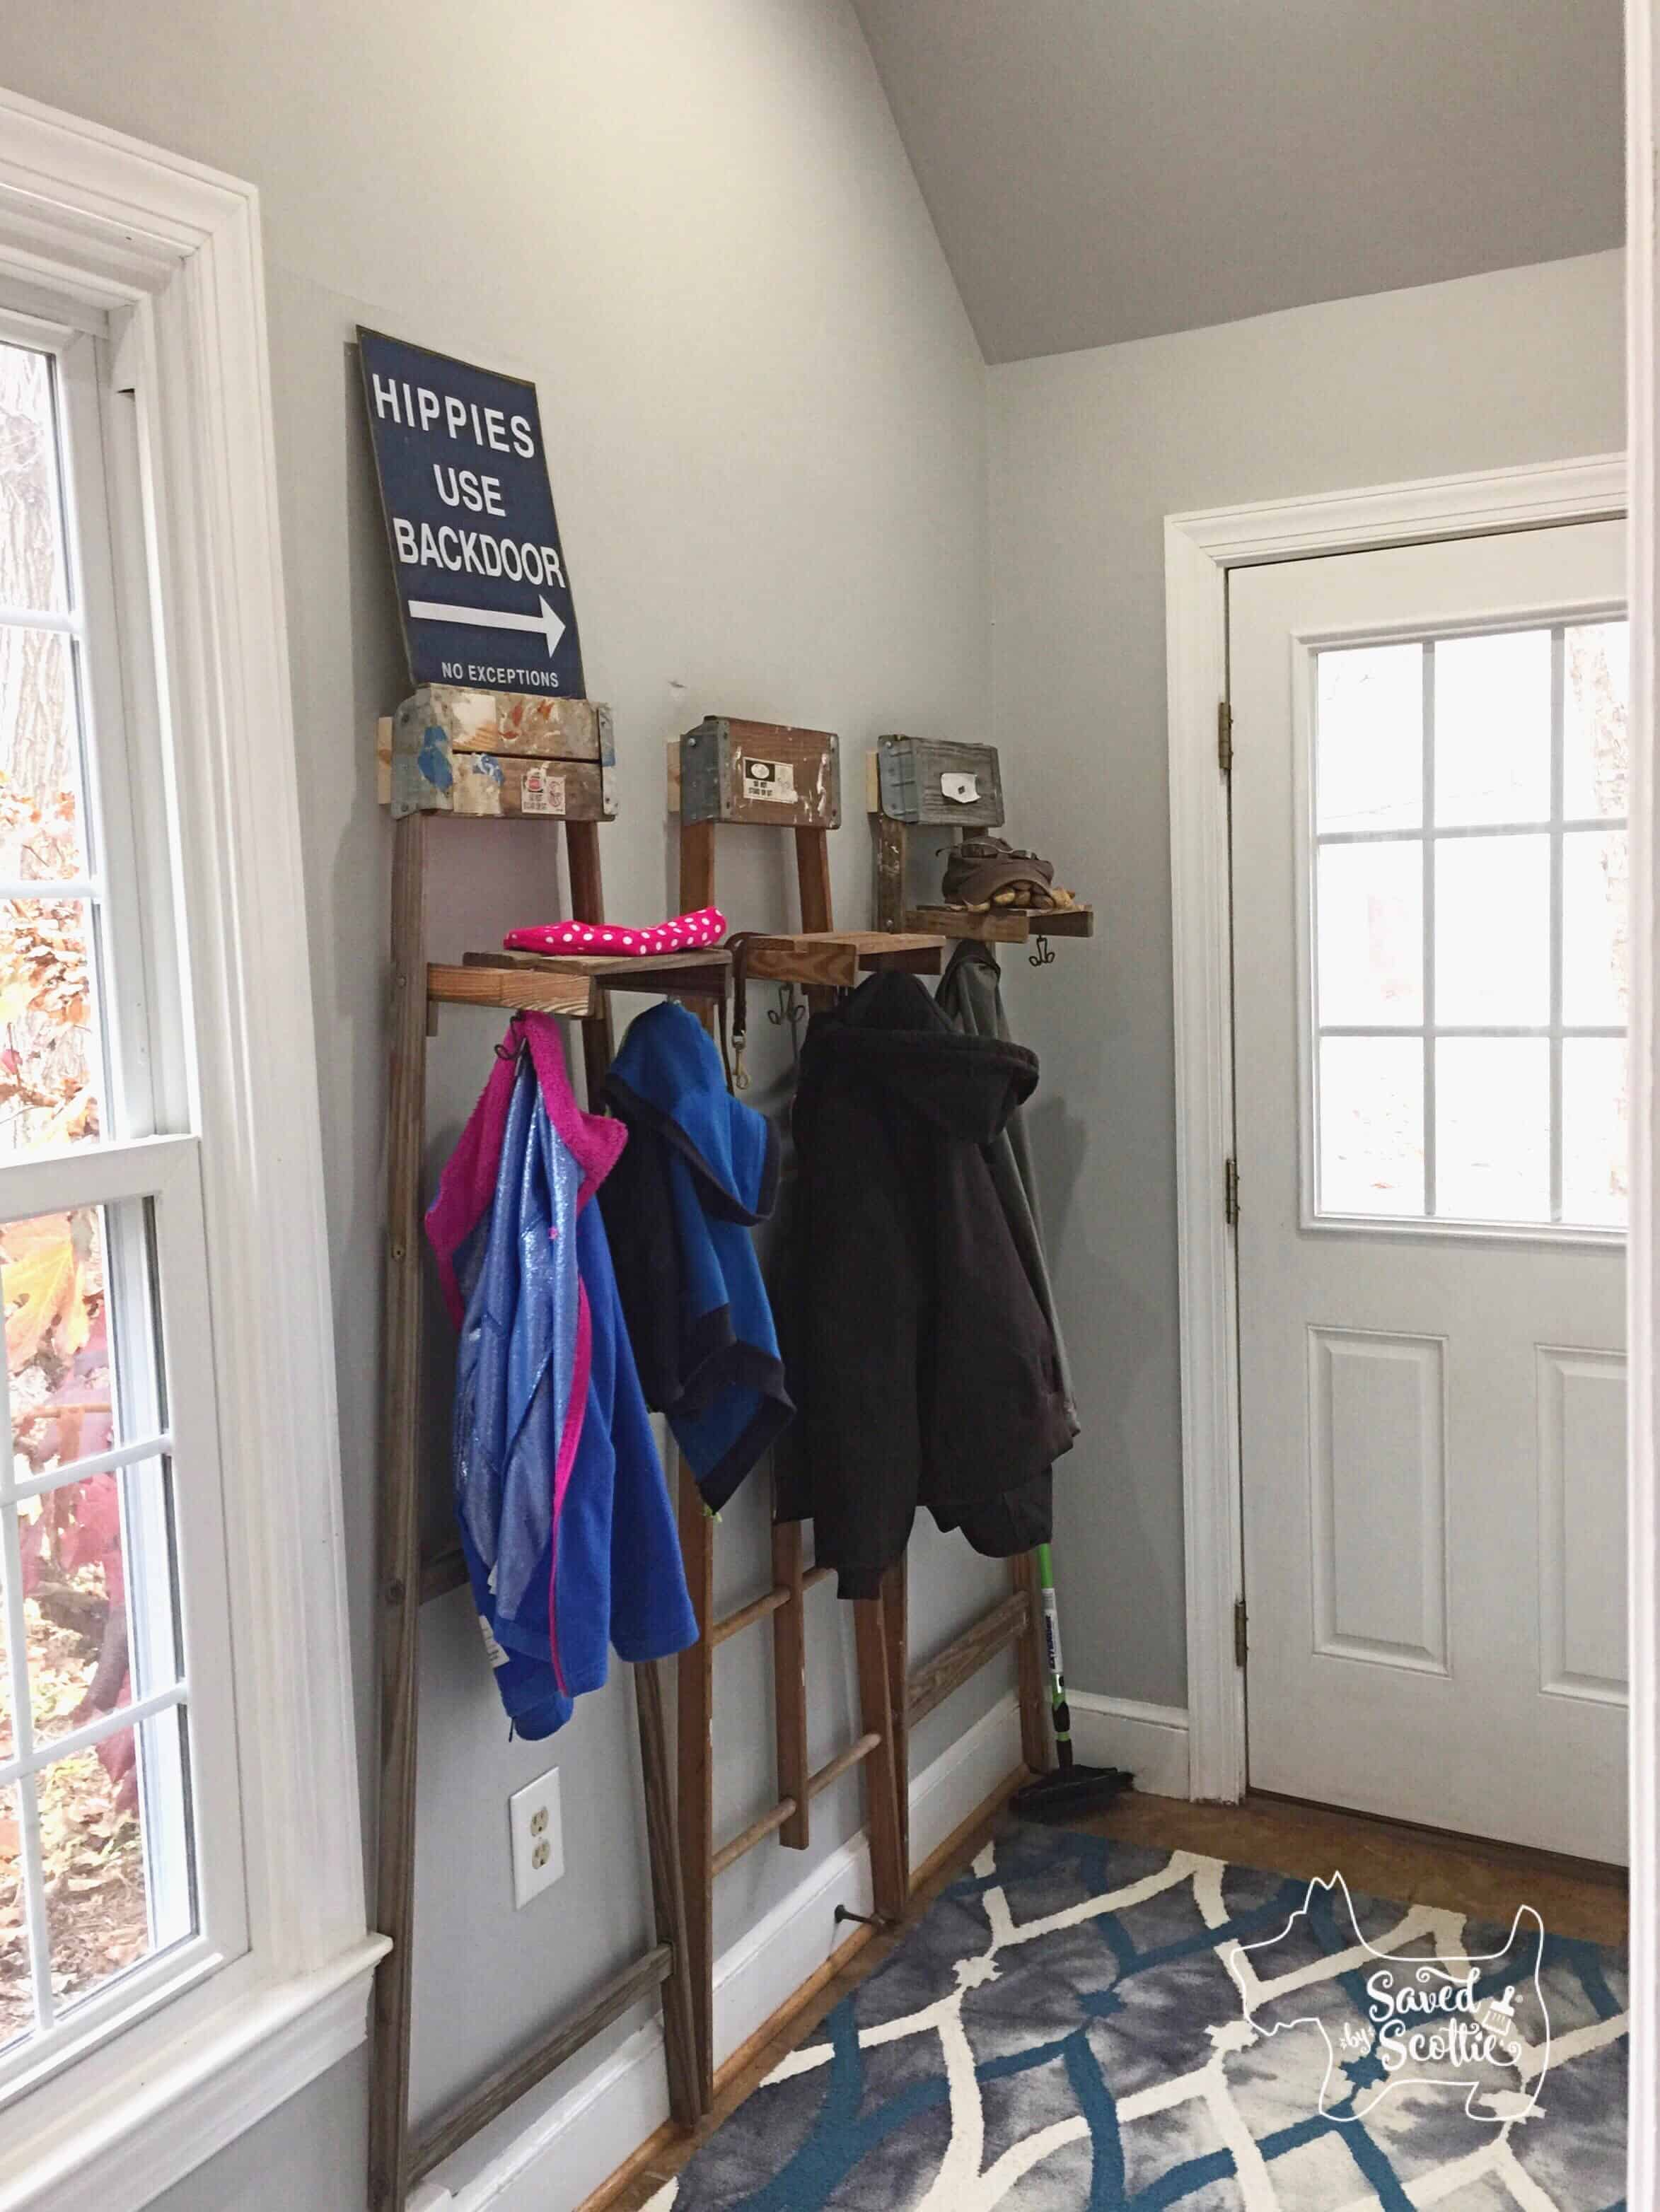 Saved by Scottie entry way transformation with ladders finished